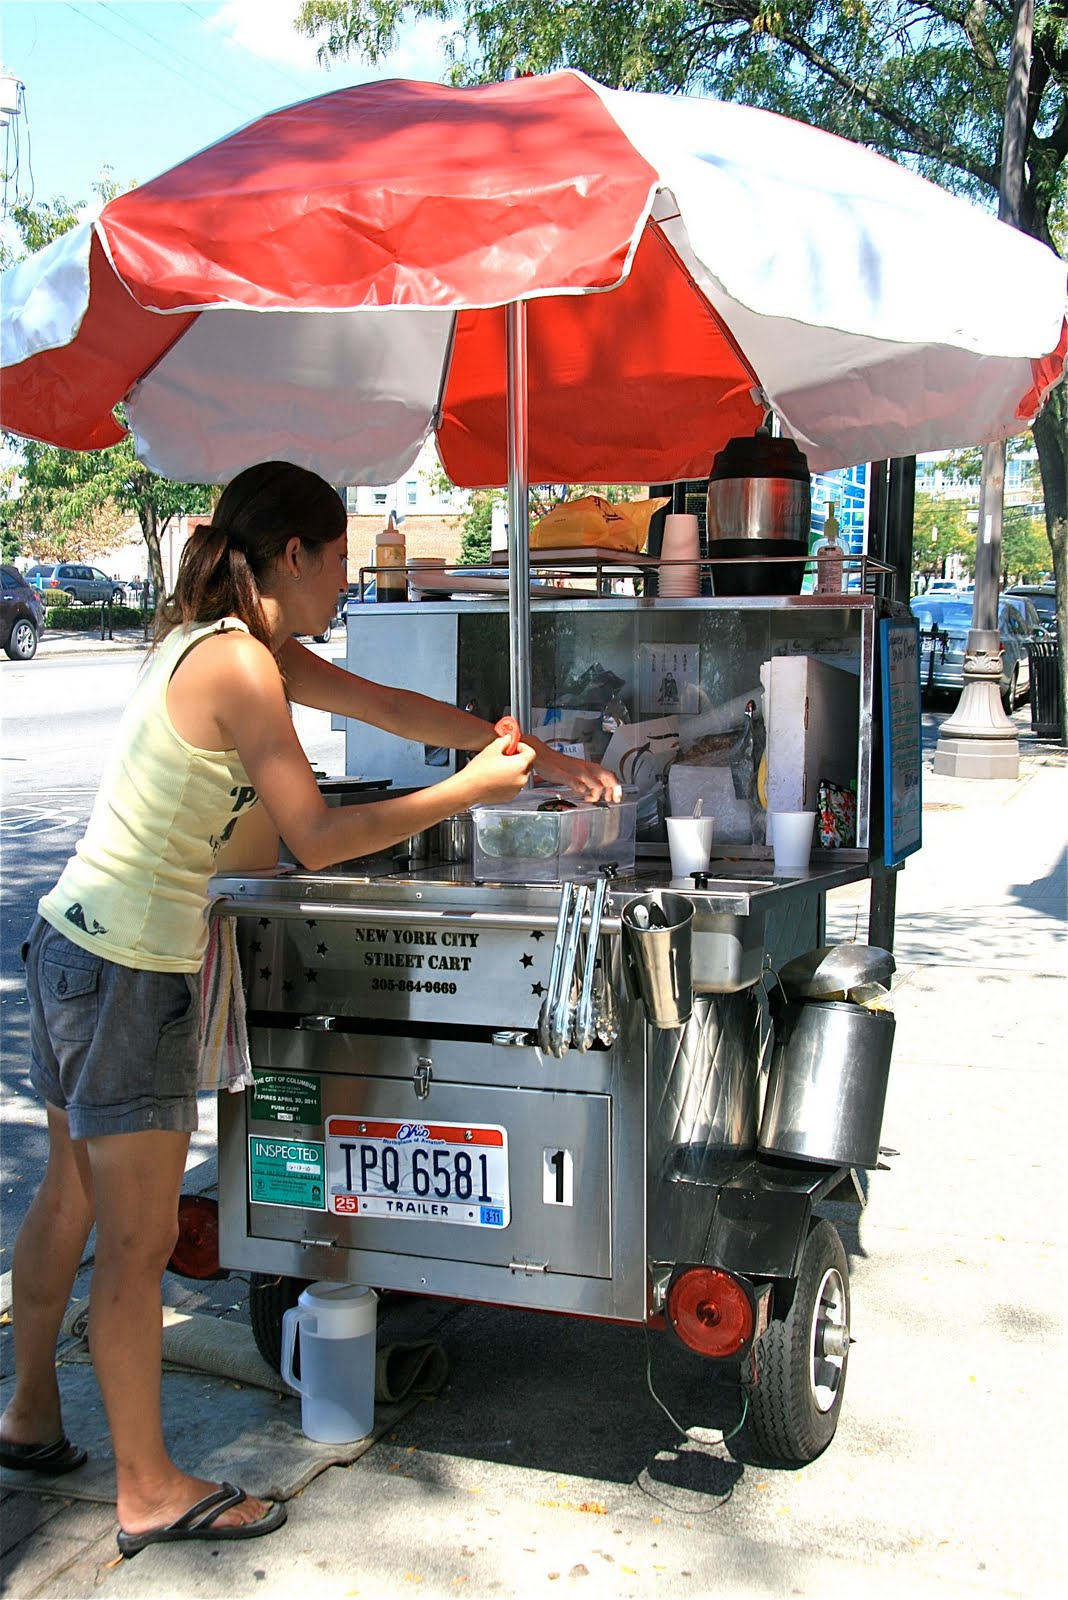 Crepe Food Carts http://coolcolumbus.blogspot.com/2010/09/japanese-crepe-cart.html